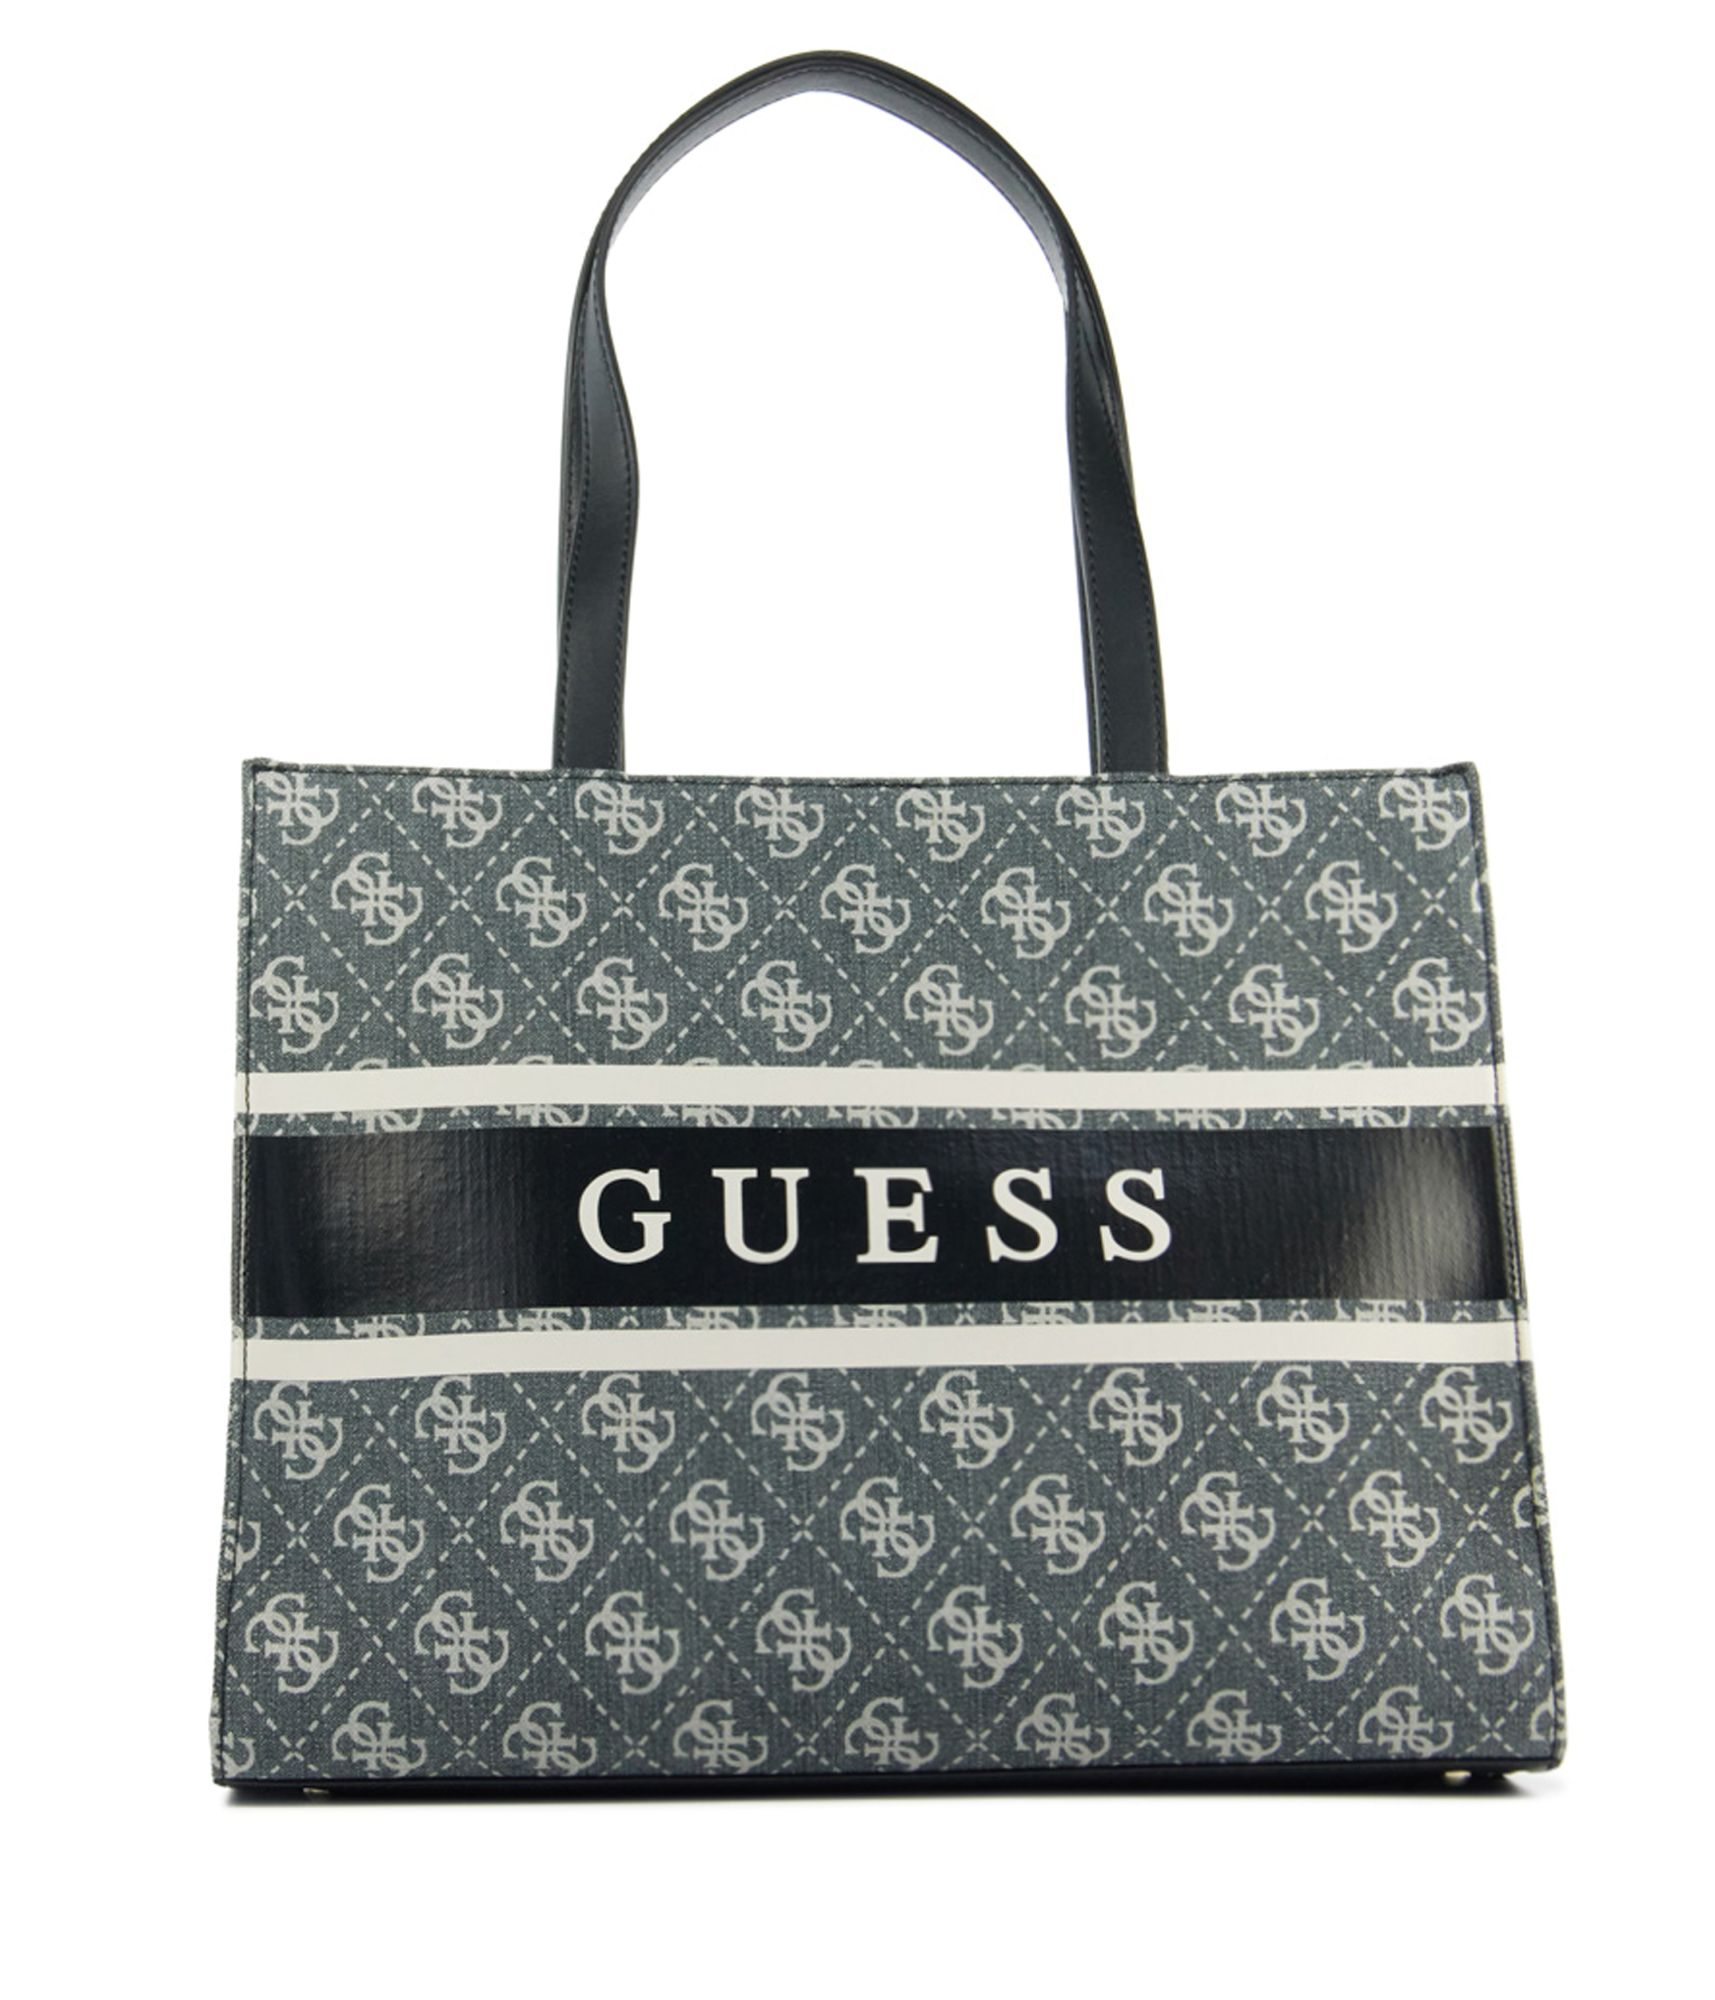 GUESS Unisex Shoppers